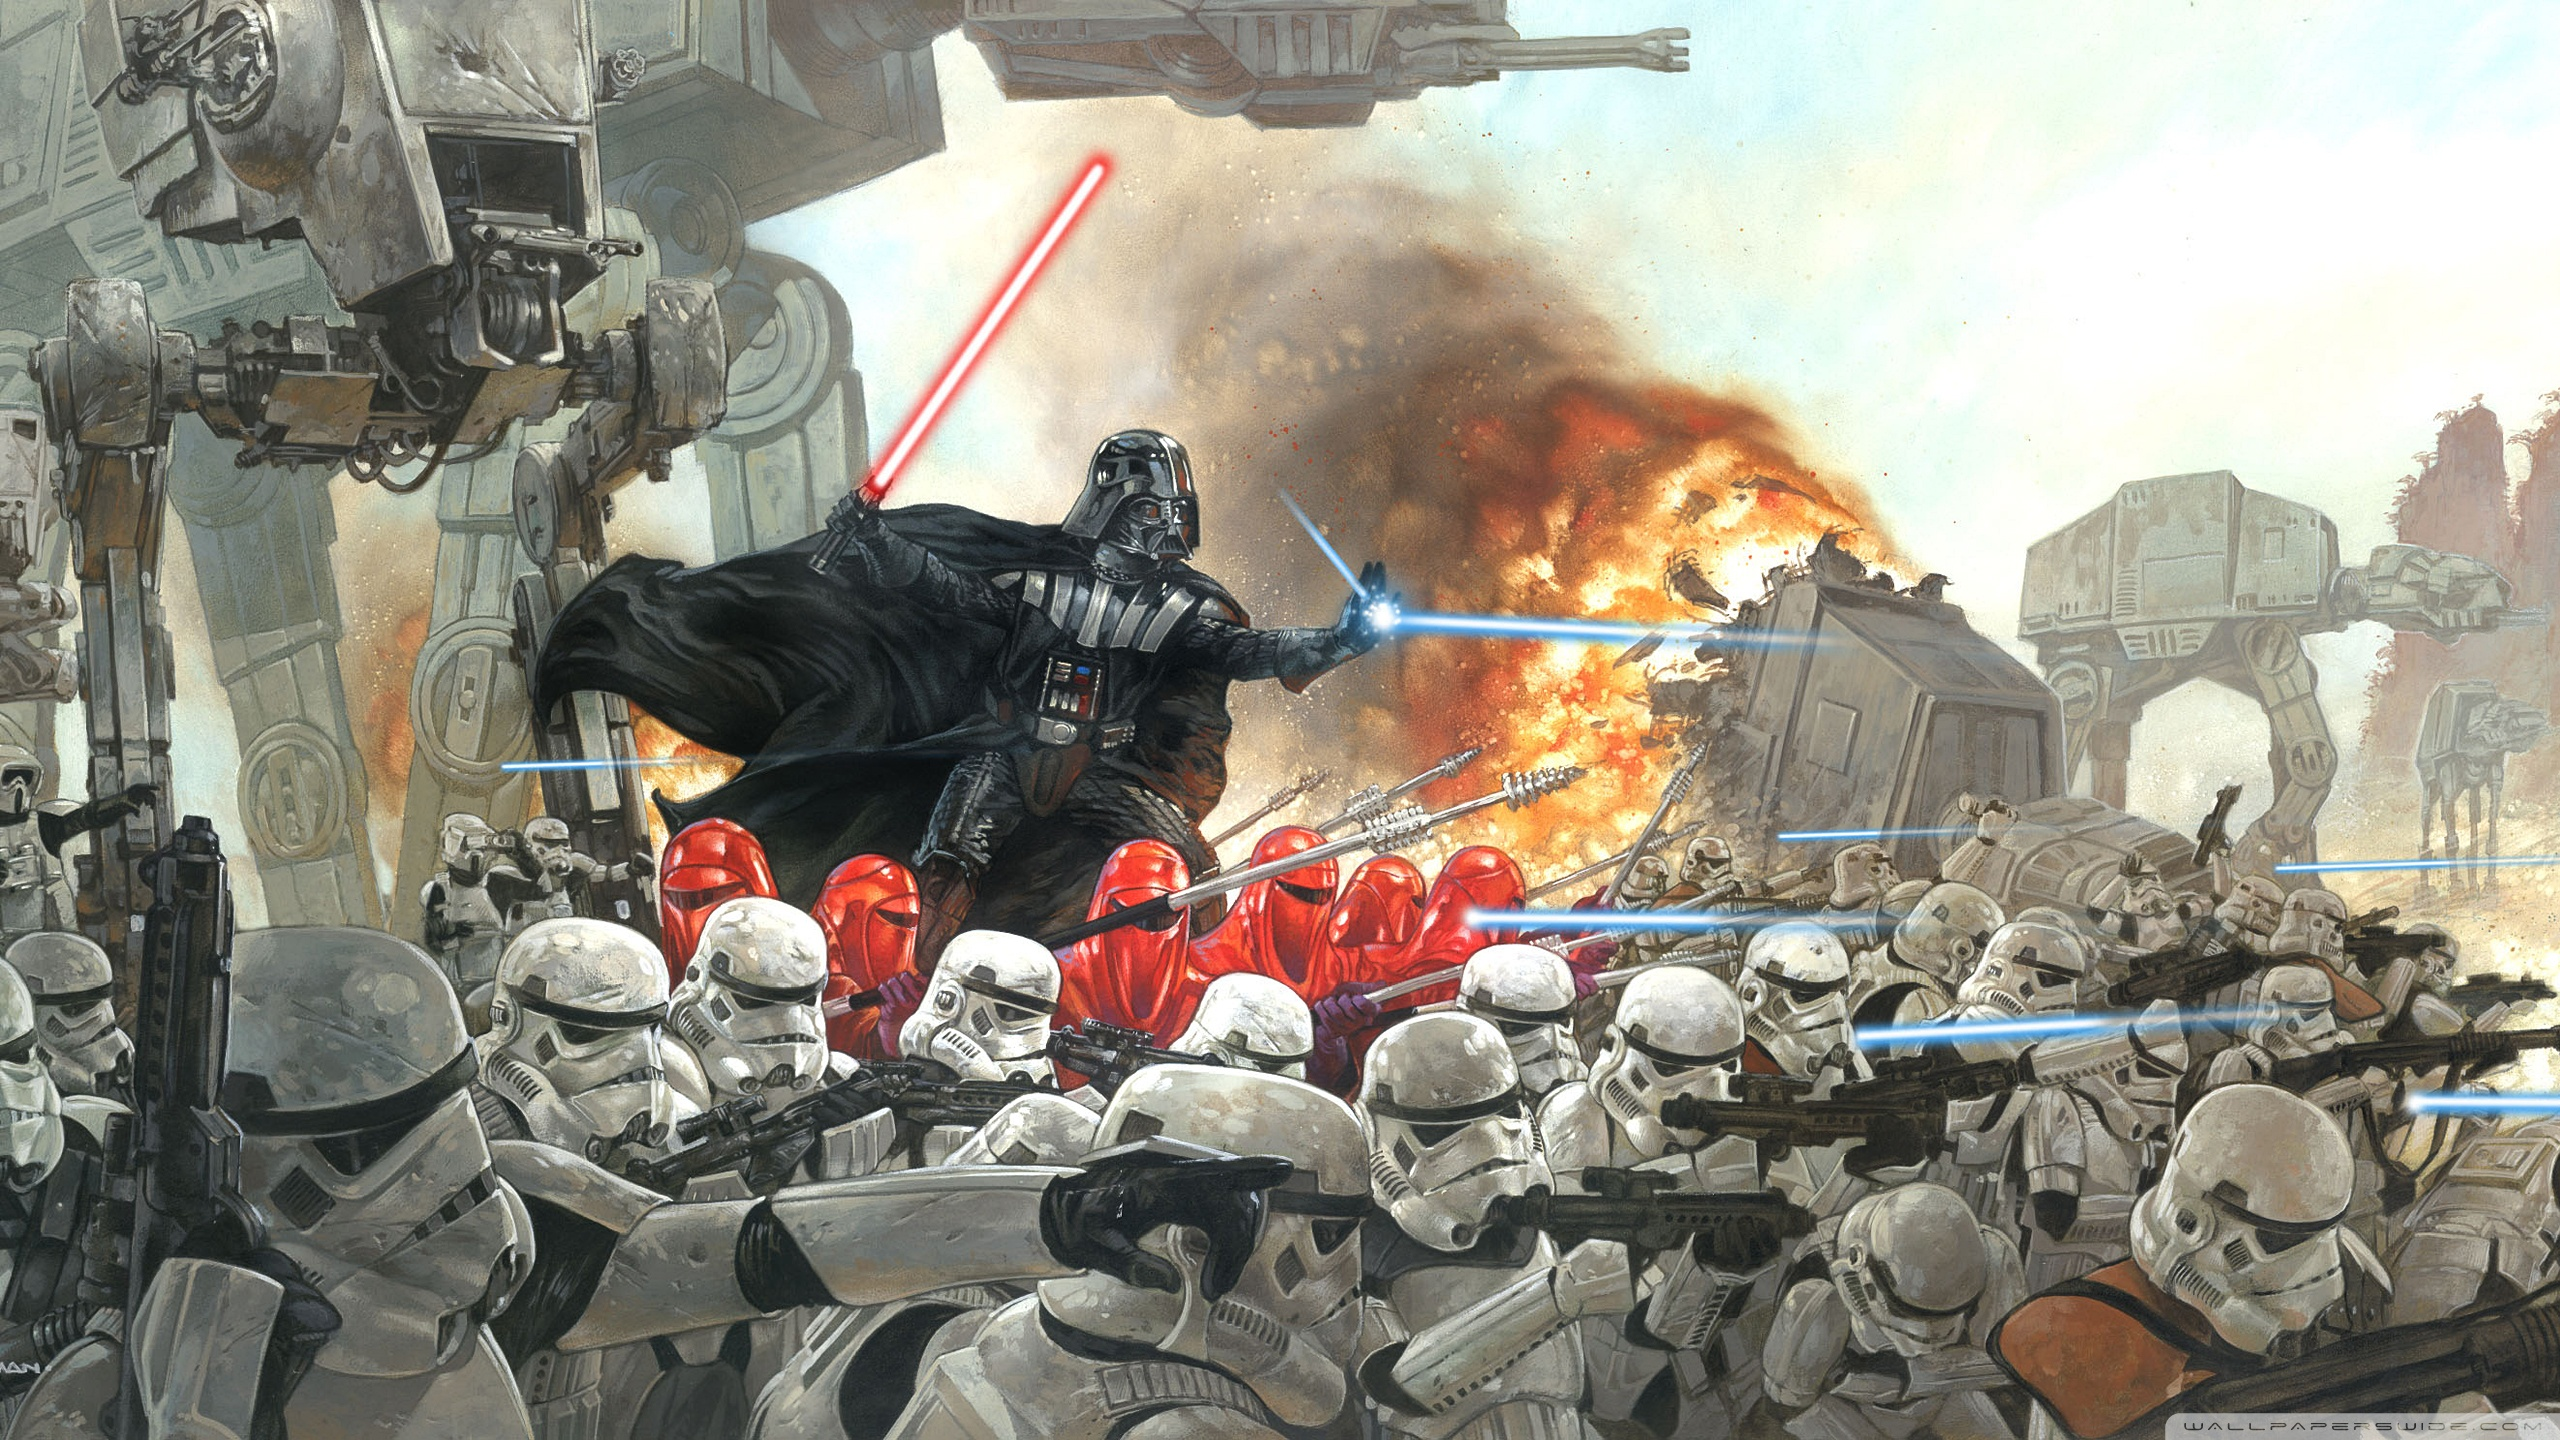 Related Wallpapers - Darth Vader In Battle , HD Wallpaper & Backgrounds